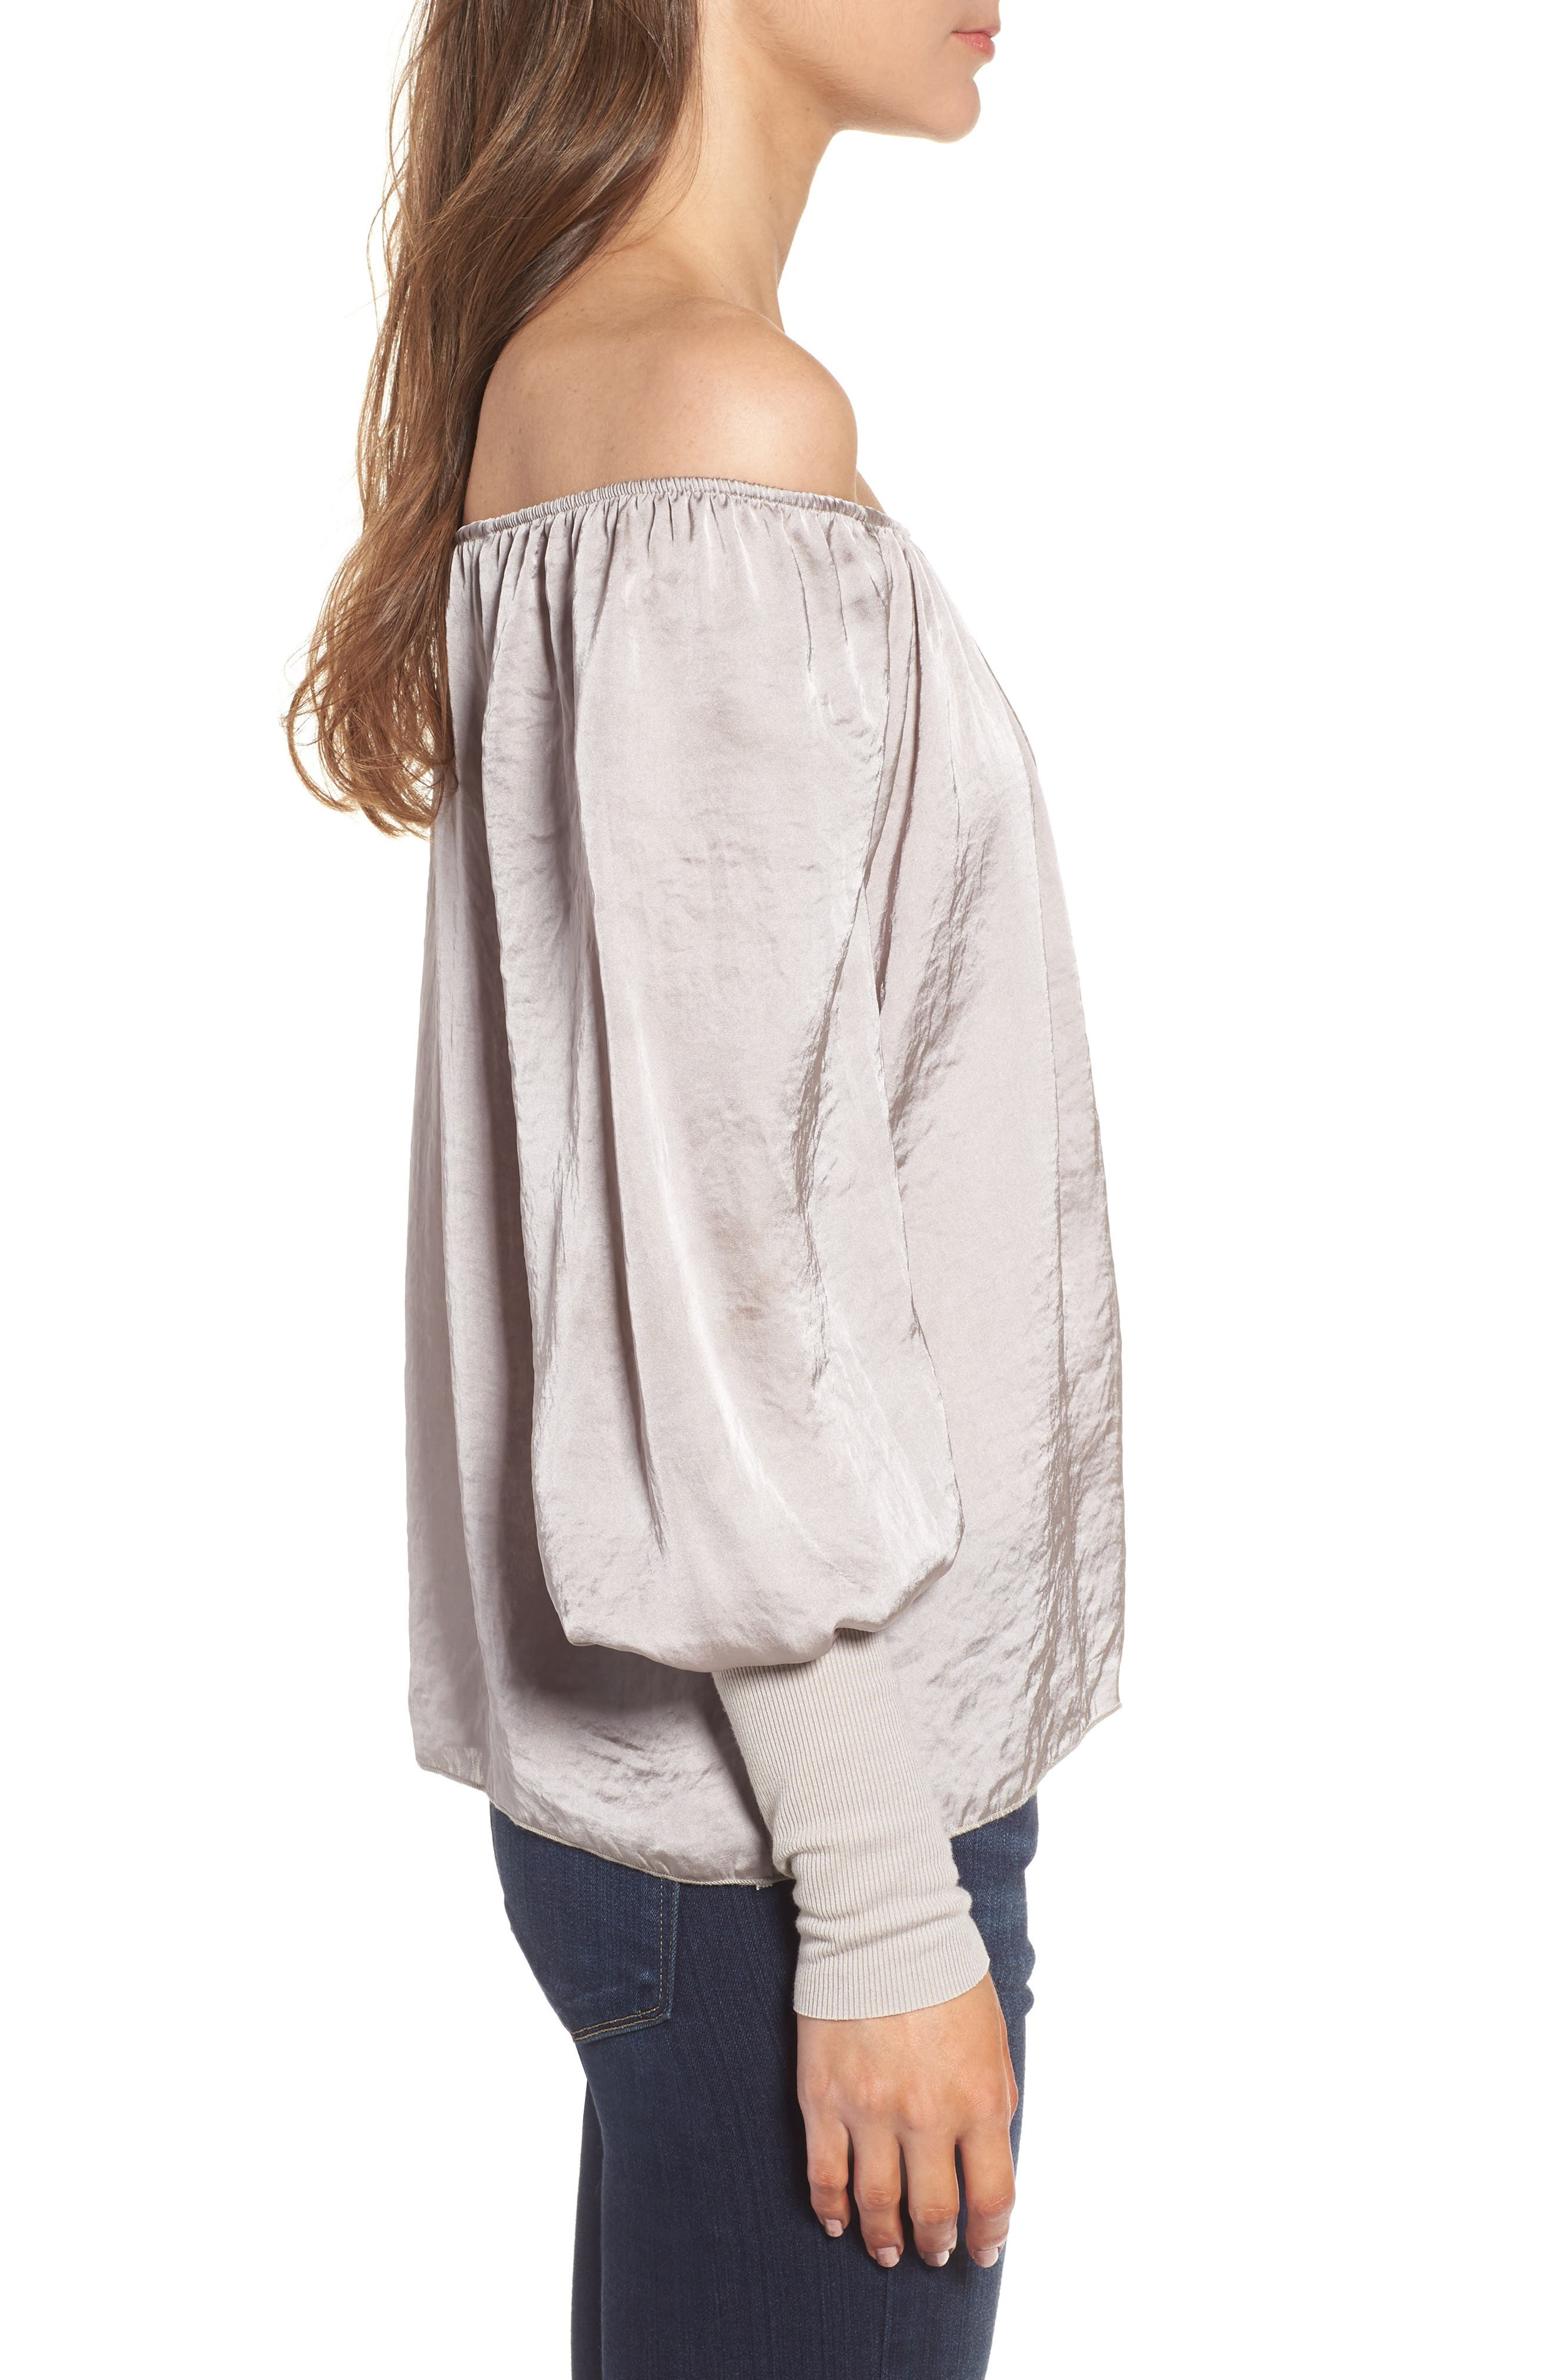 Working Title Satin Top,                             Alternate thumbnail 3, color,                             Taupe